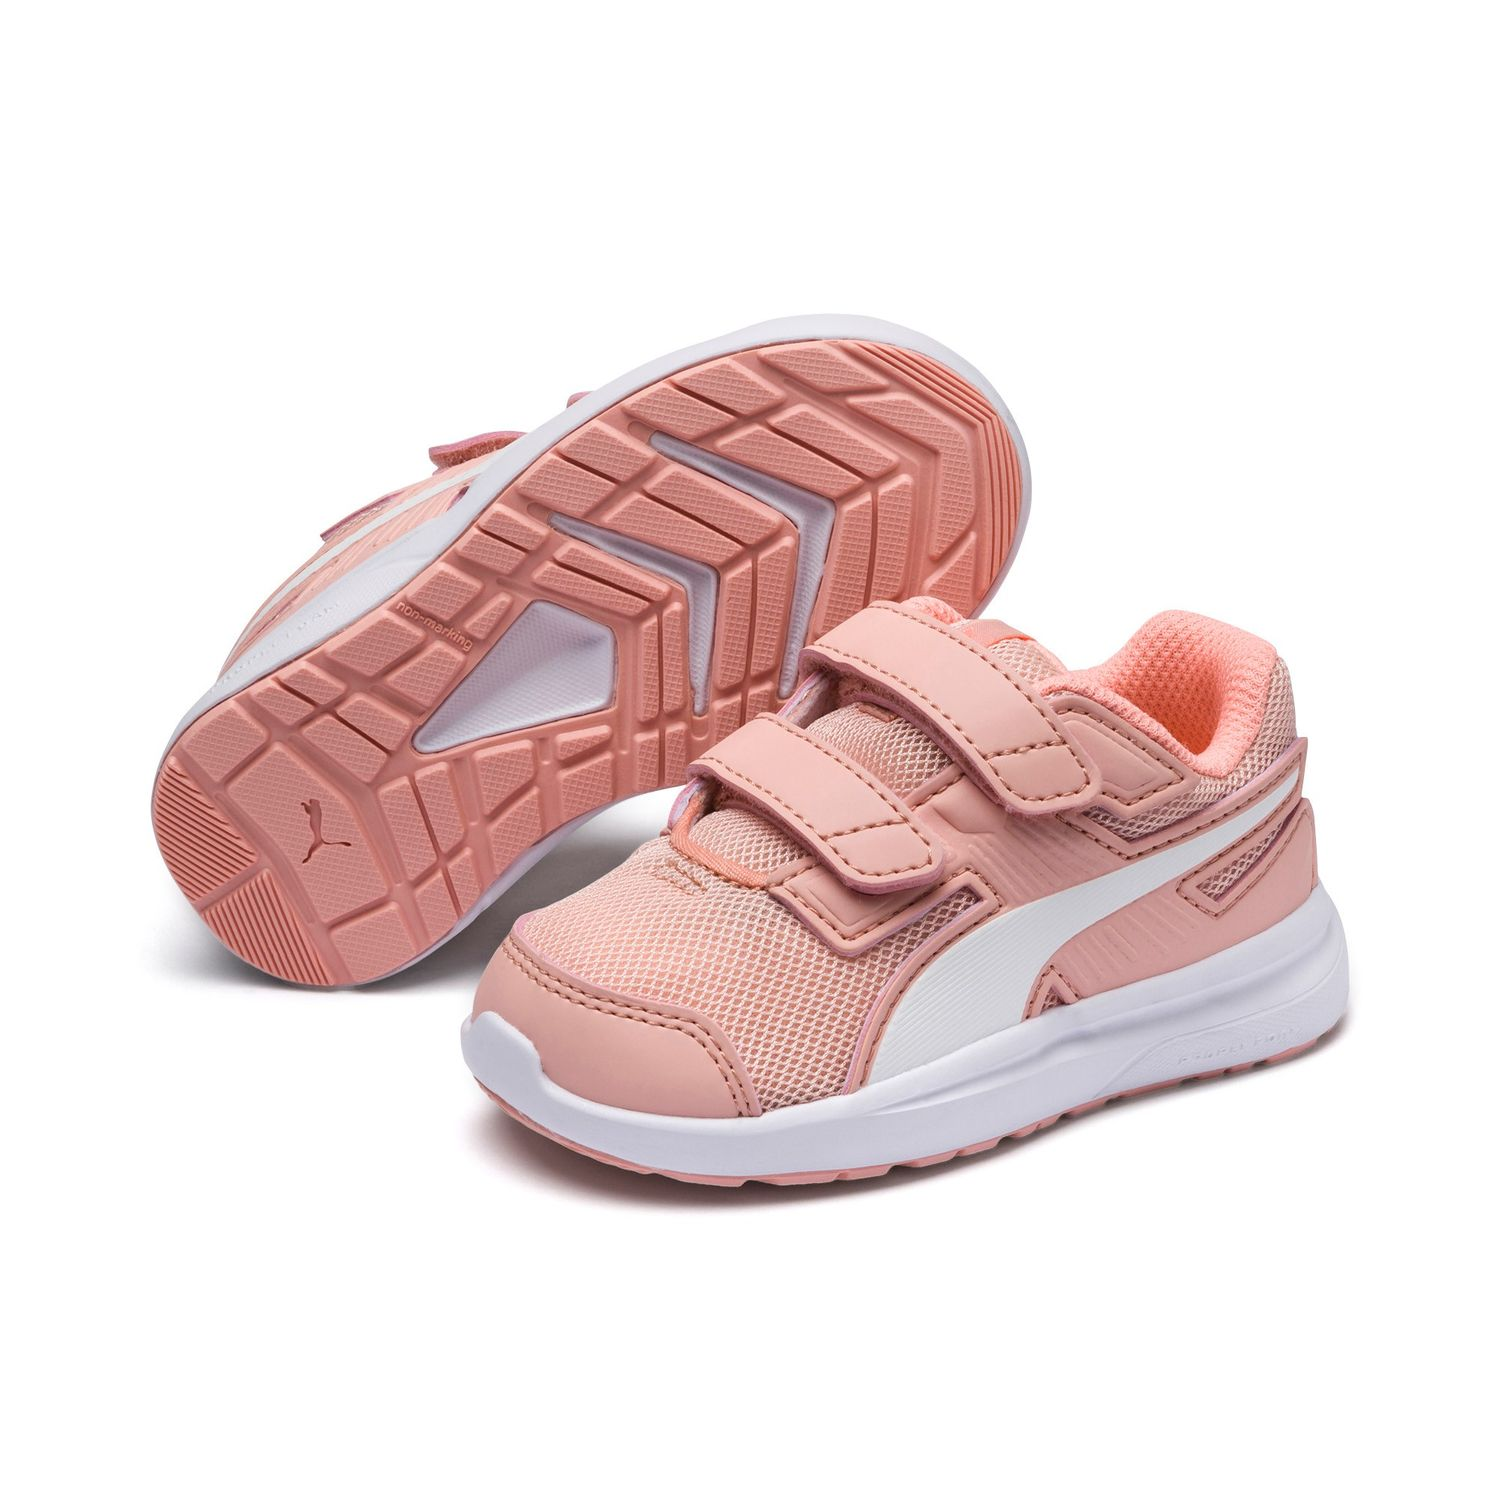 Clothing, Shoes & Accessories Bright Puma Comet V Inf Low Top Kinder Baby Schuhe Sneaker Textil 190677 Peacoat